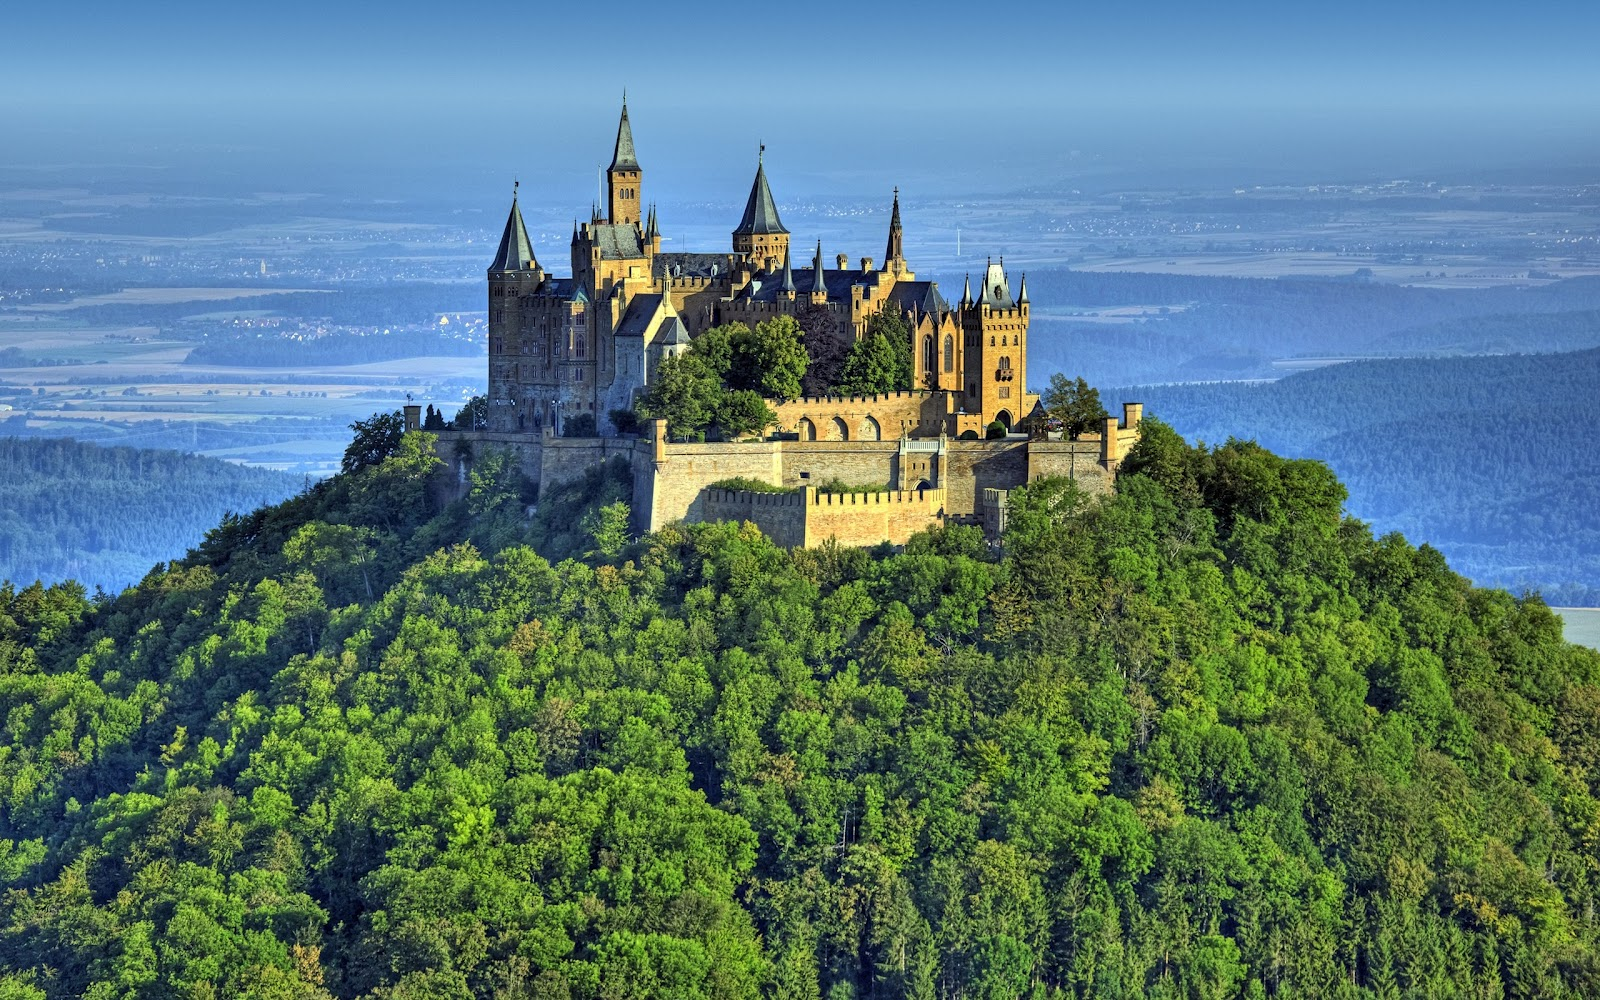 Castle on Mountain Awesome Landscape Germany Holiday Desktop Wallpaper 1600x1000